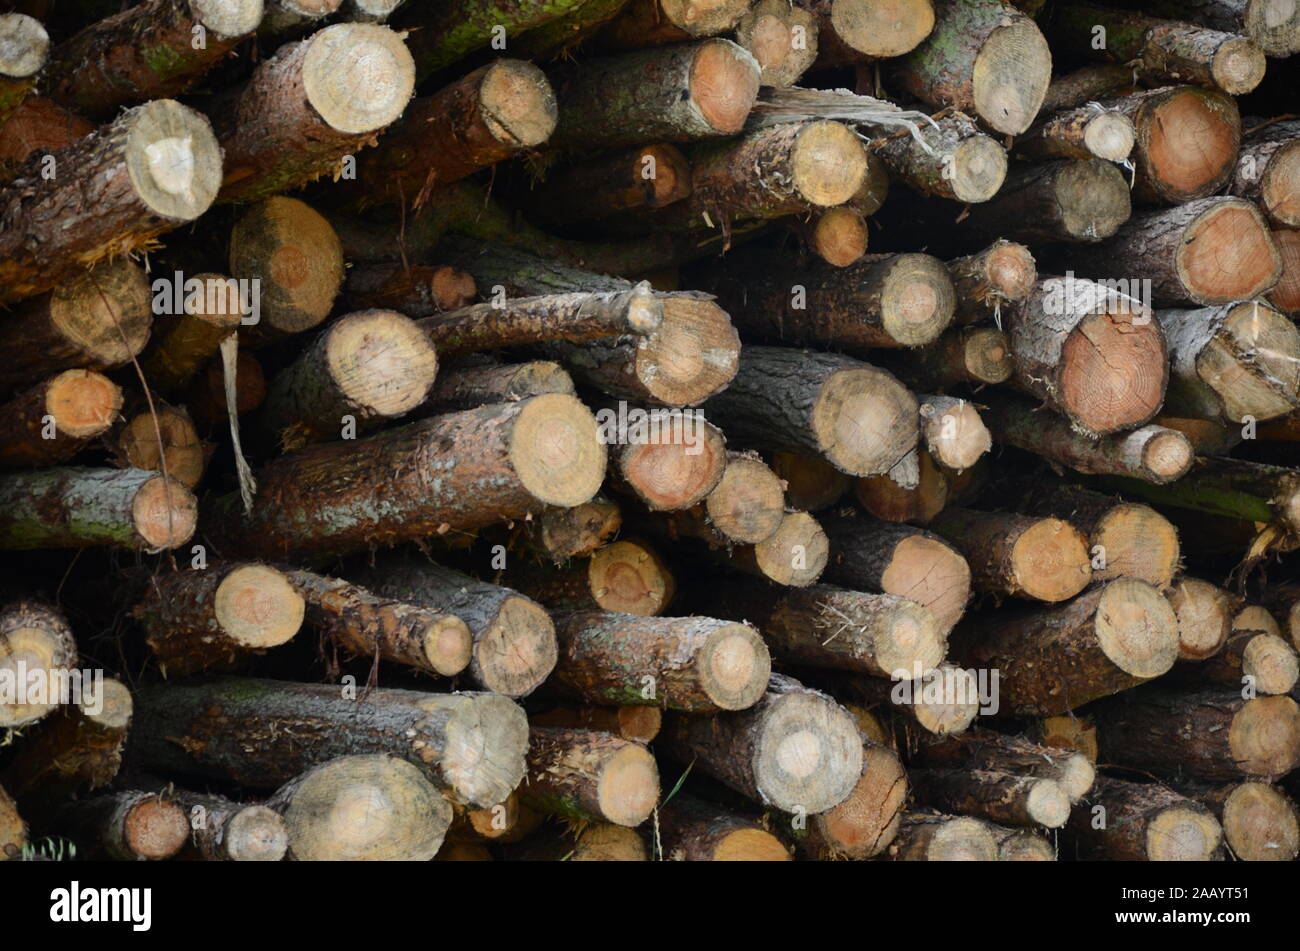 deforestation and climate change Stock Photo